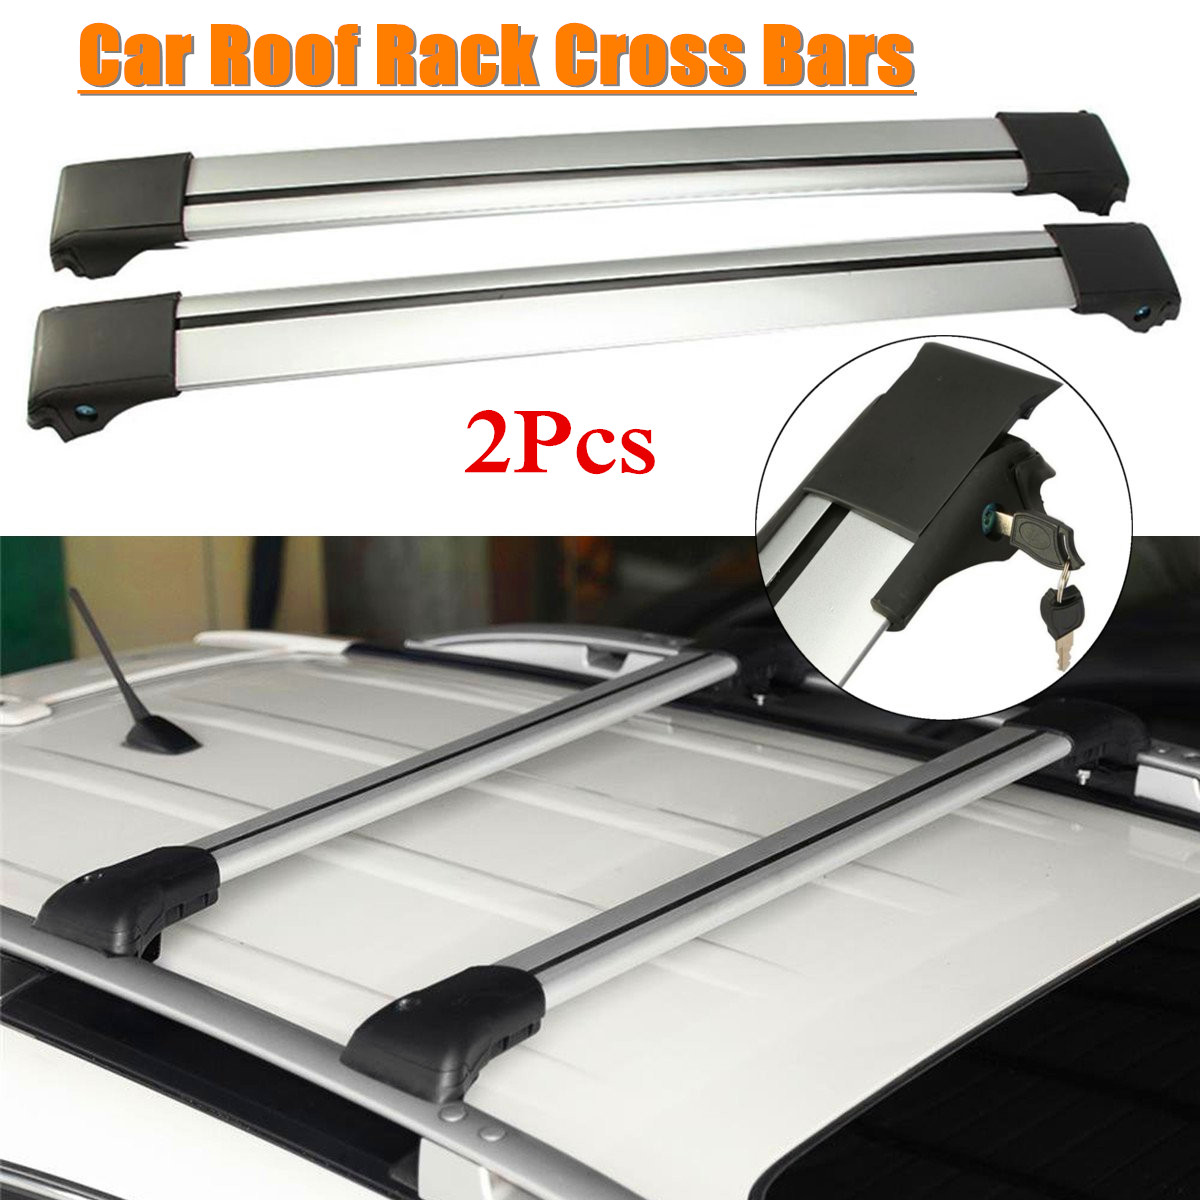 2Pcs Universal Car Roof Rack Cross Bar Luggage Carrier For Raised Rail 93-99mm image